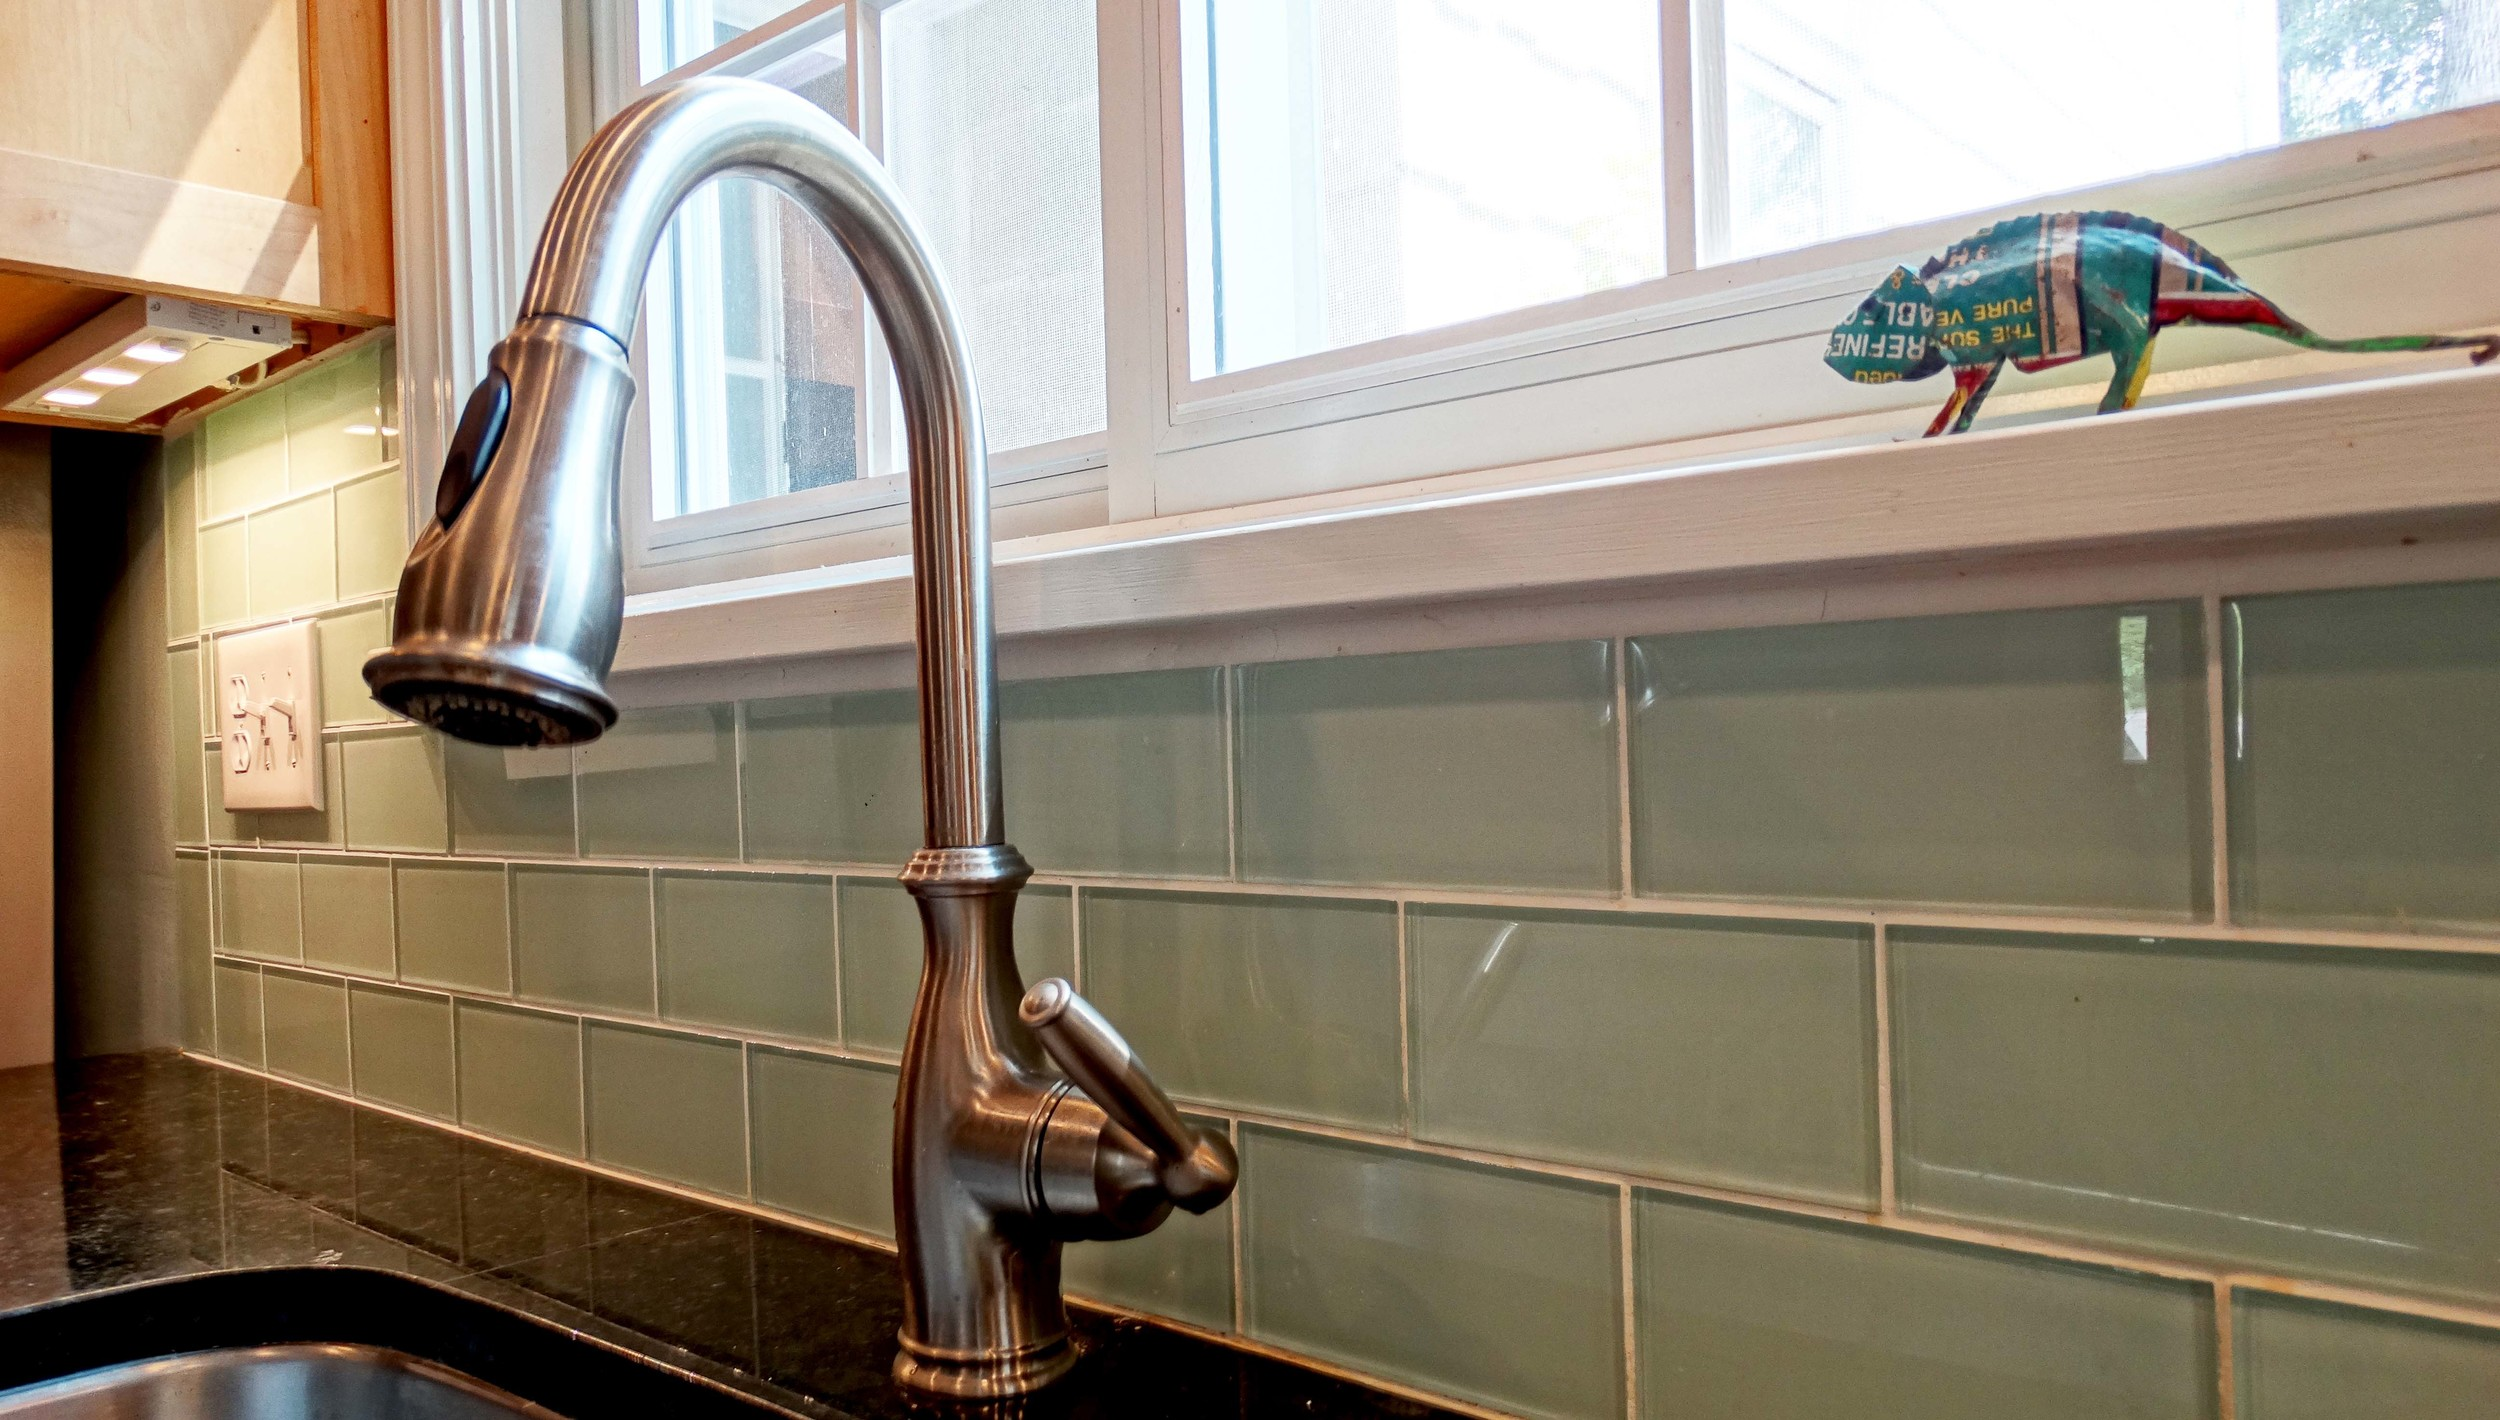 Retro glass subway tiles and under counter lighting blend modern and old school touches in this reimagined kitchen.